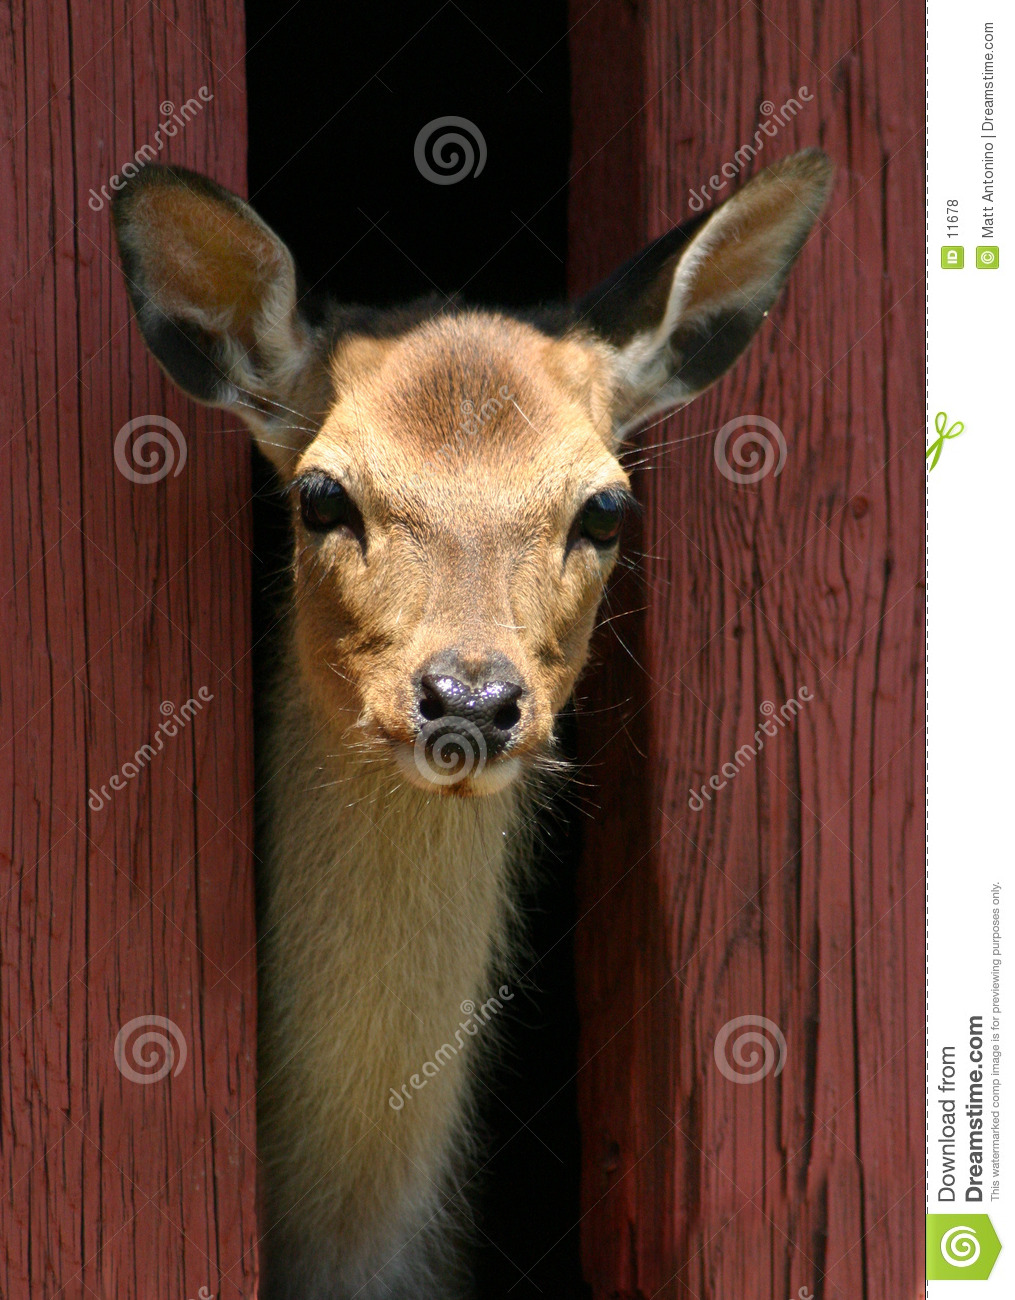 Download Deer stock photo. Image of stare, xmas, head, wildlife, female - 11678